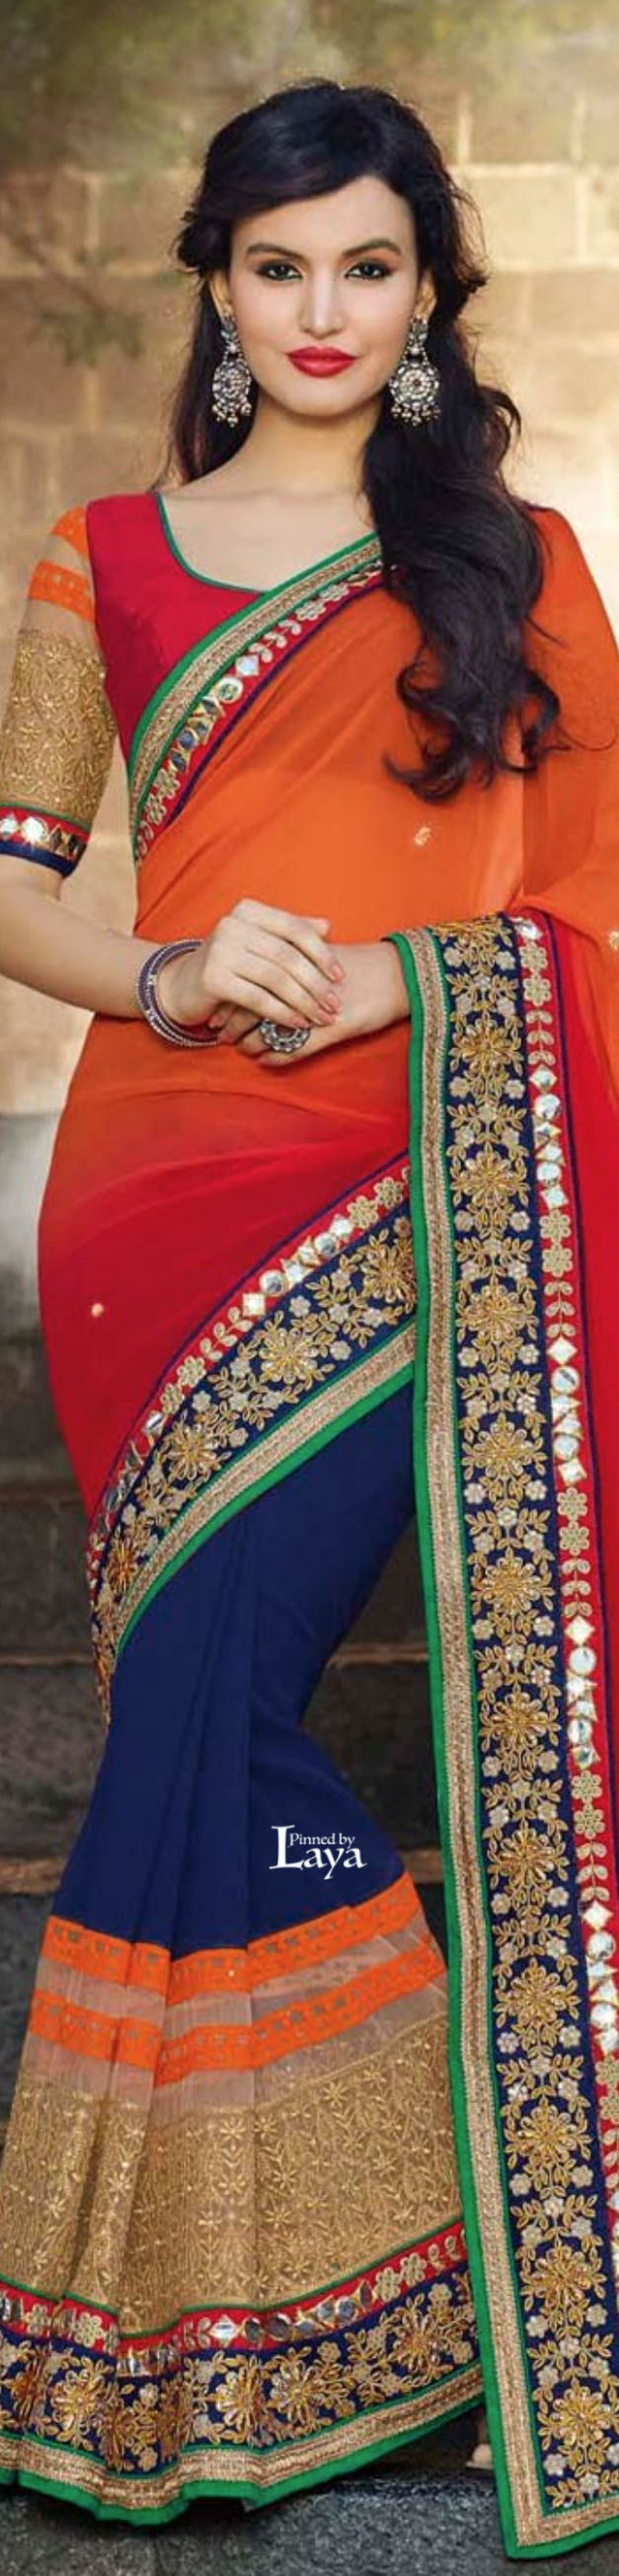 #SAREES women fashion outfit clothing style apparel